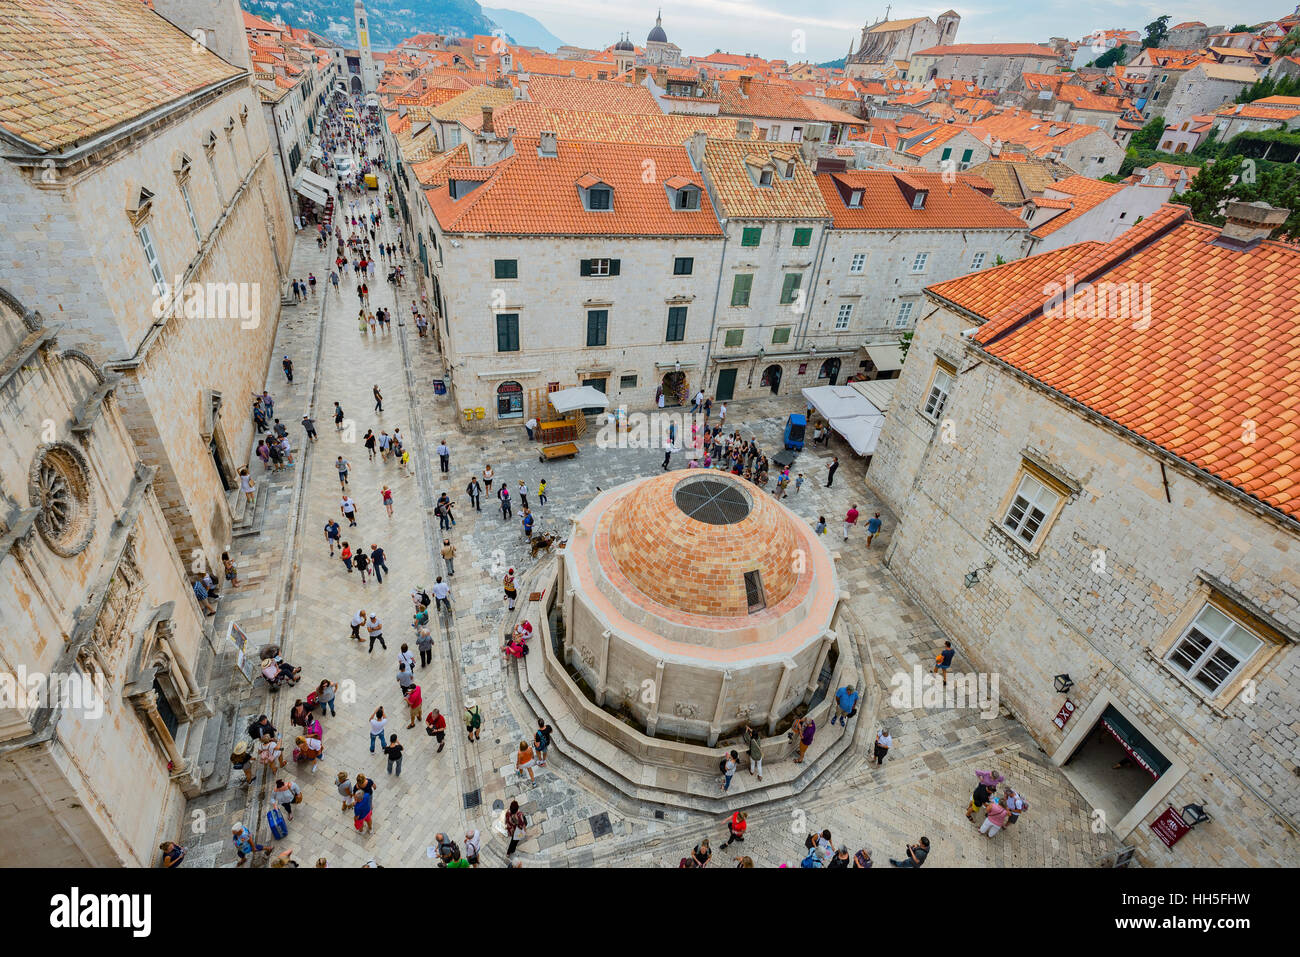 Birdseye view of Dubrovnik's Old City square taken from the top of the ancient wall surrounding the city. - Stock Image